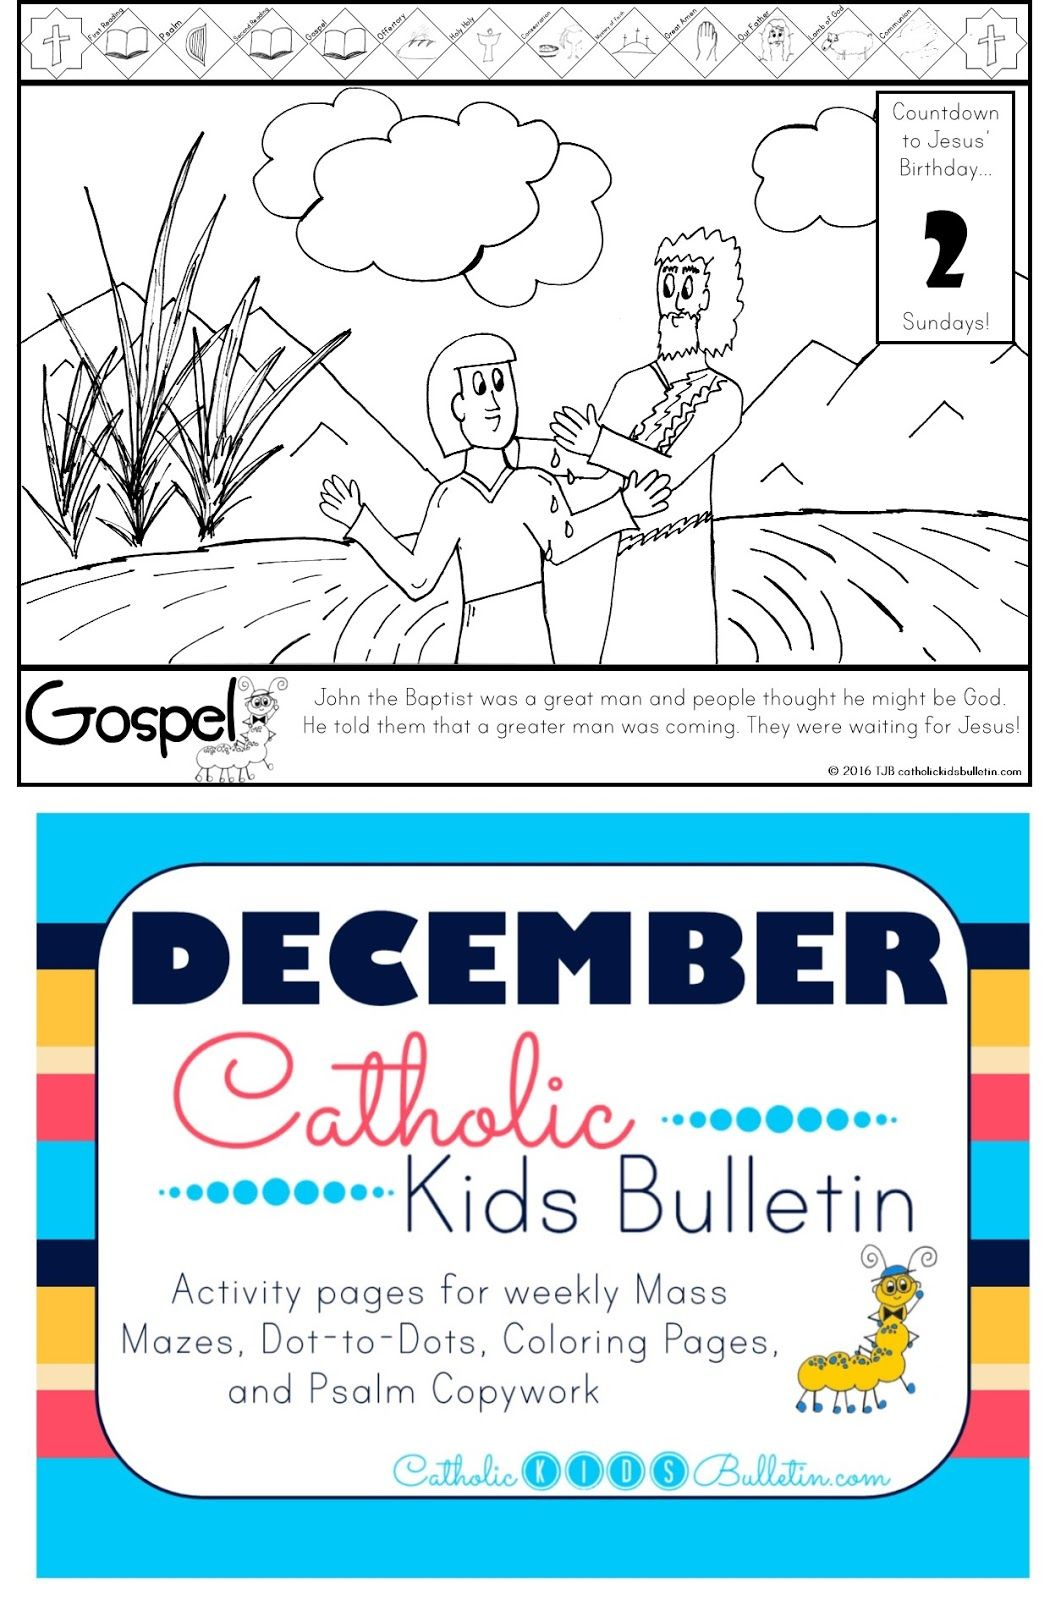 December Catholic Kids Bulletin